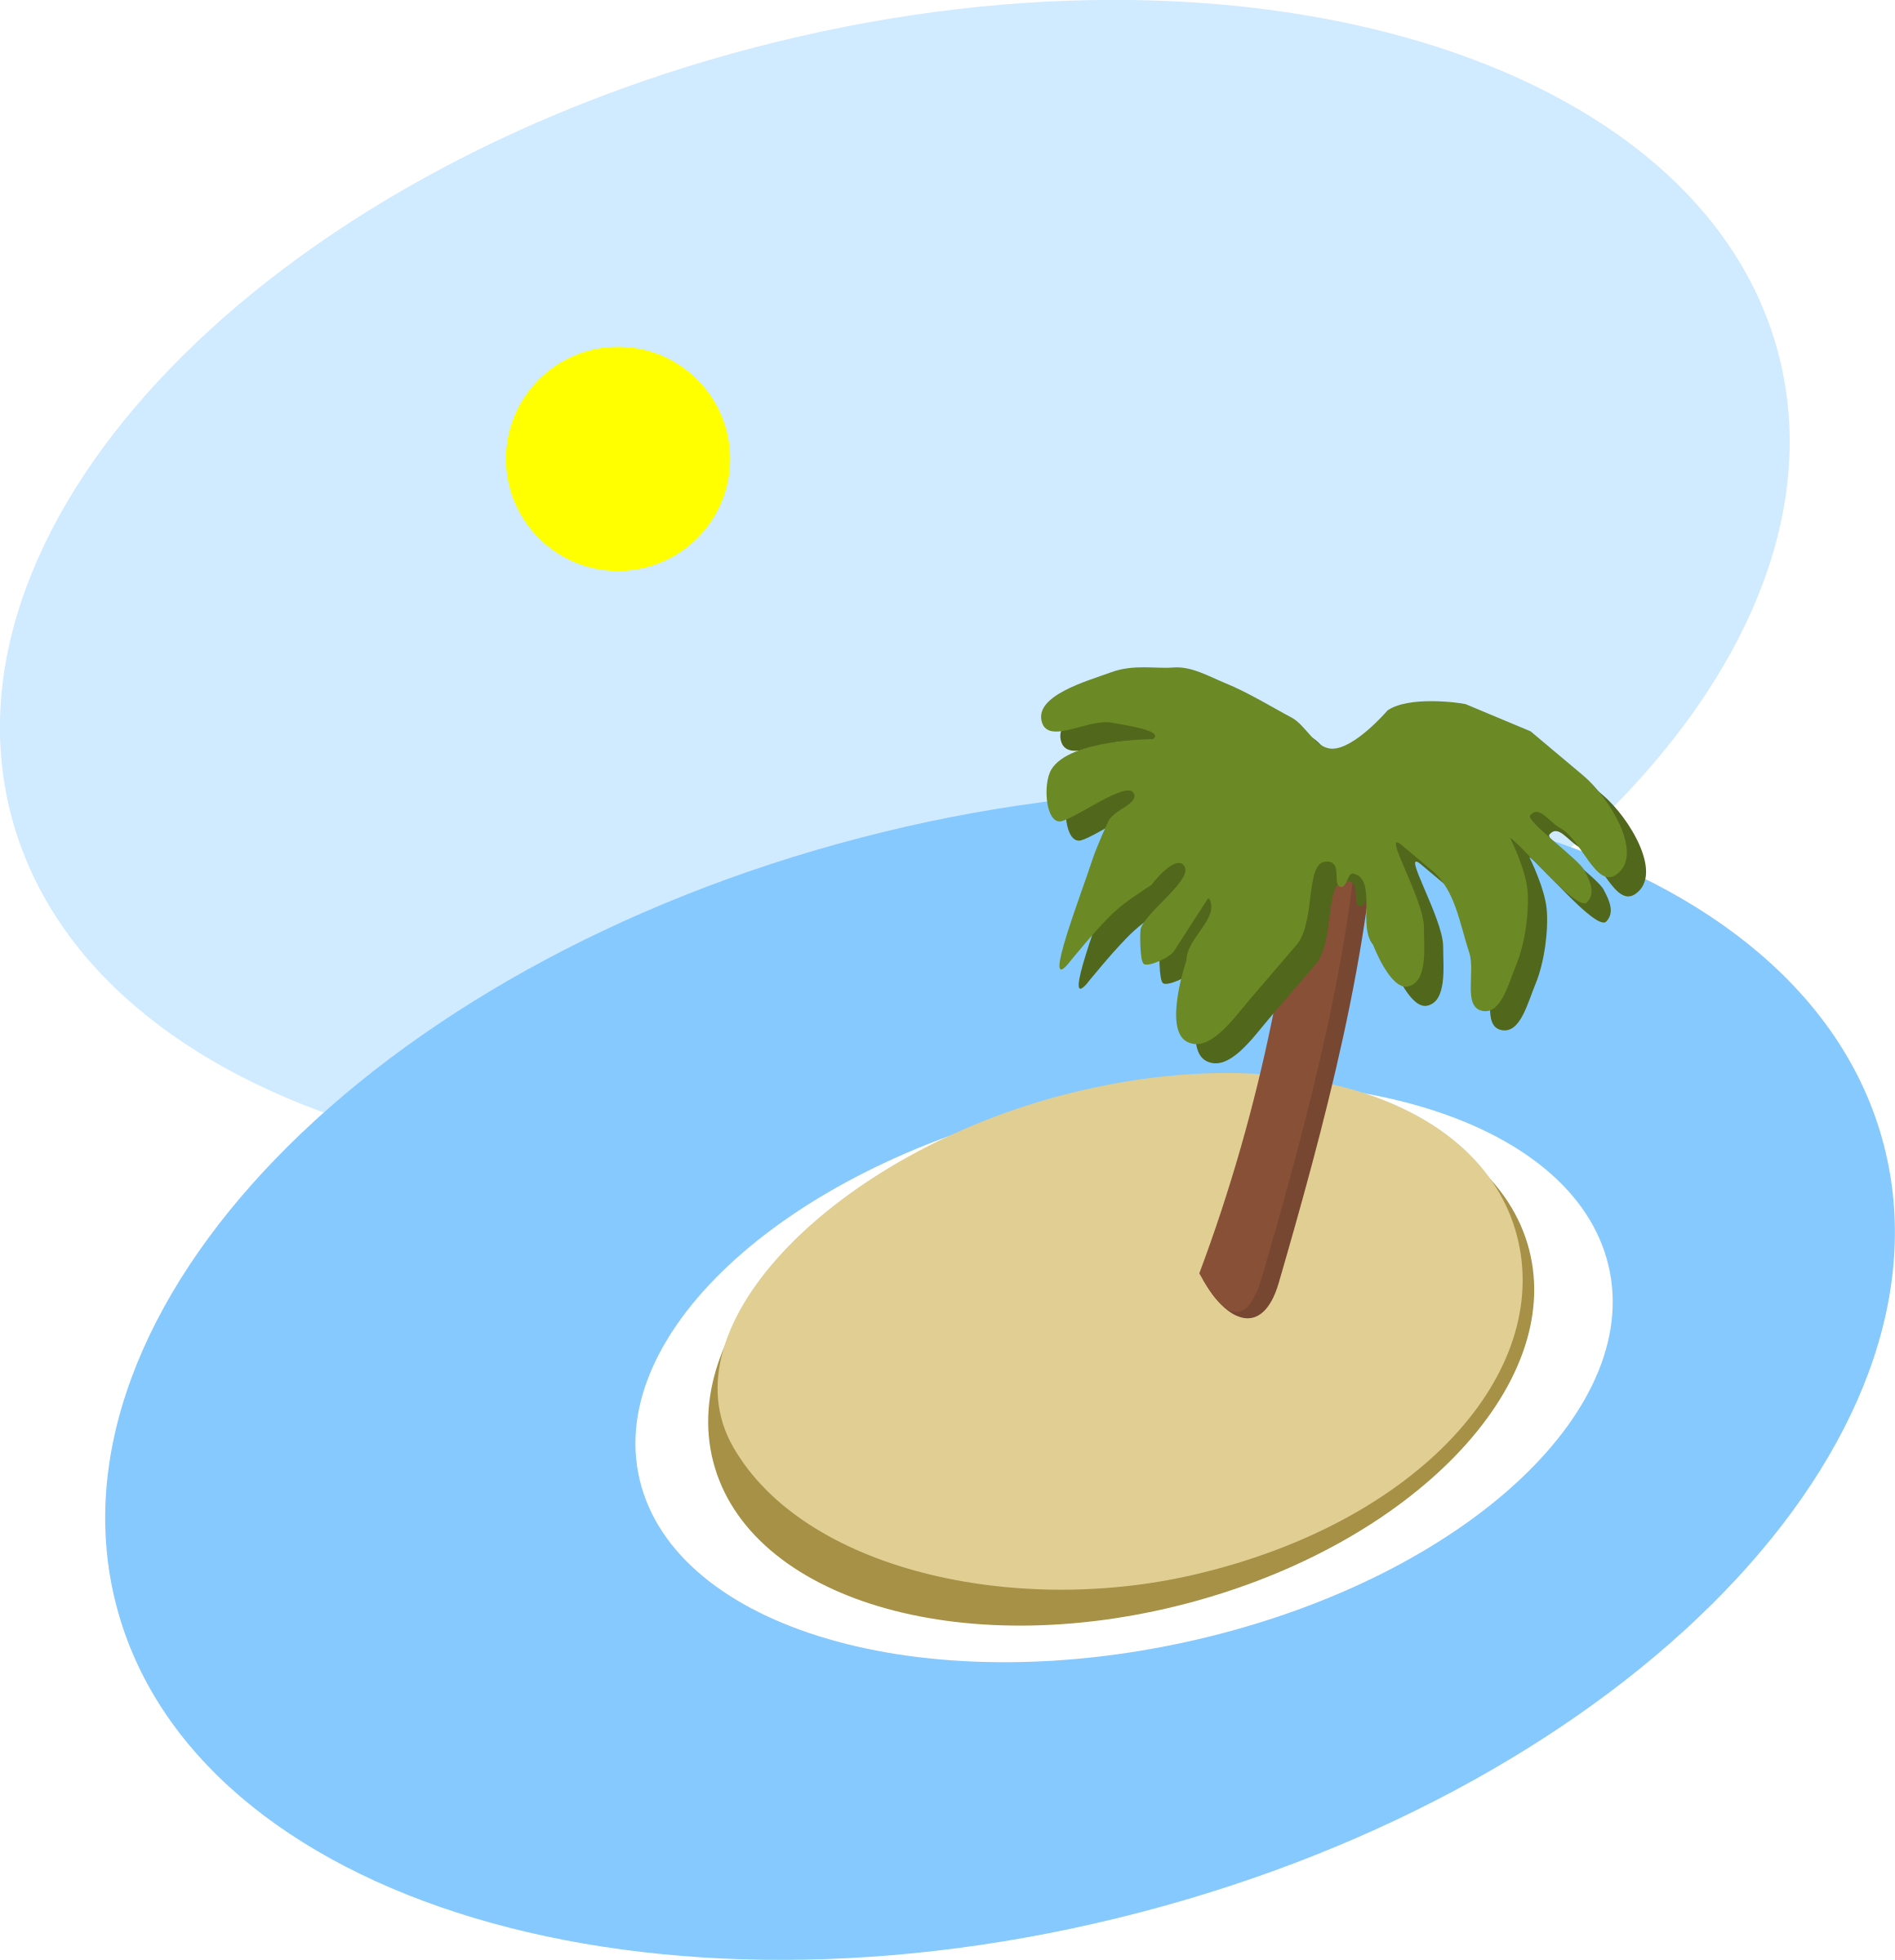 Hawaiin sun clipart jpg royalty free download Summer Scene Clipart at GetDrawings.com | Free for personal use ... jpg royalty free download